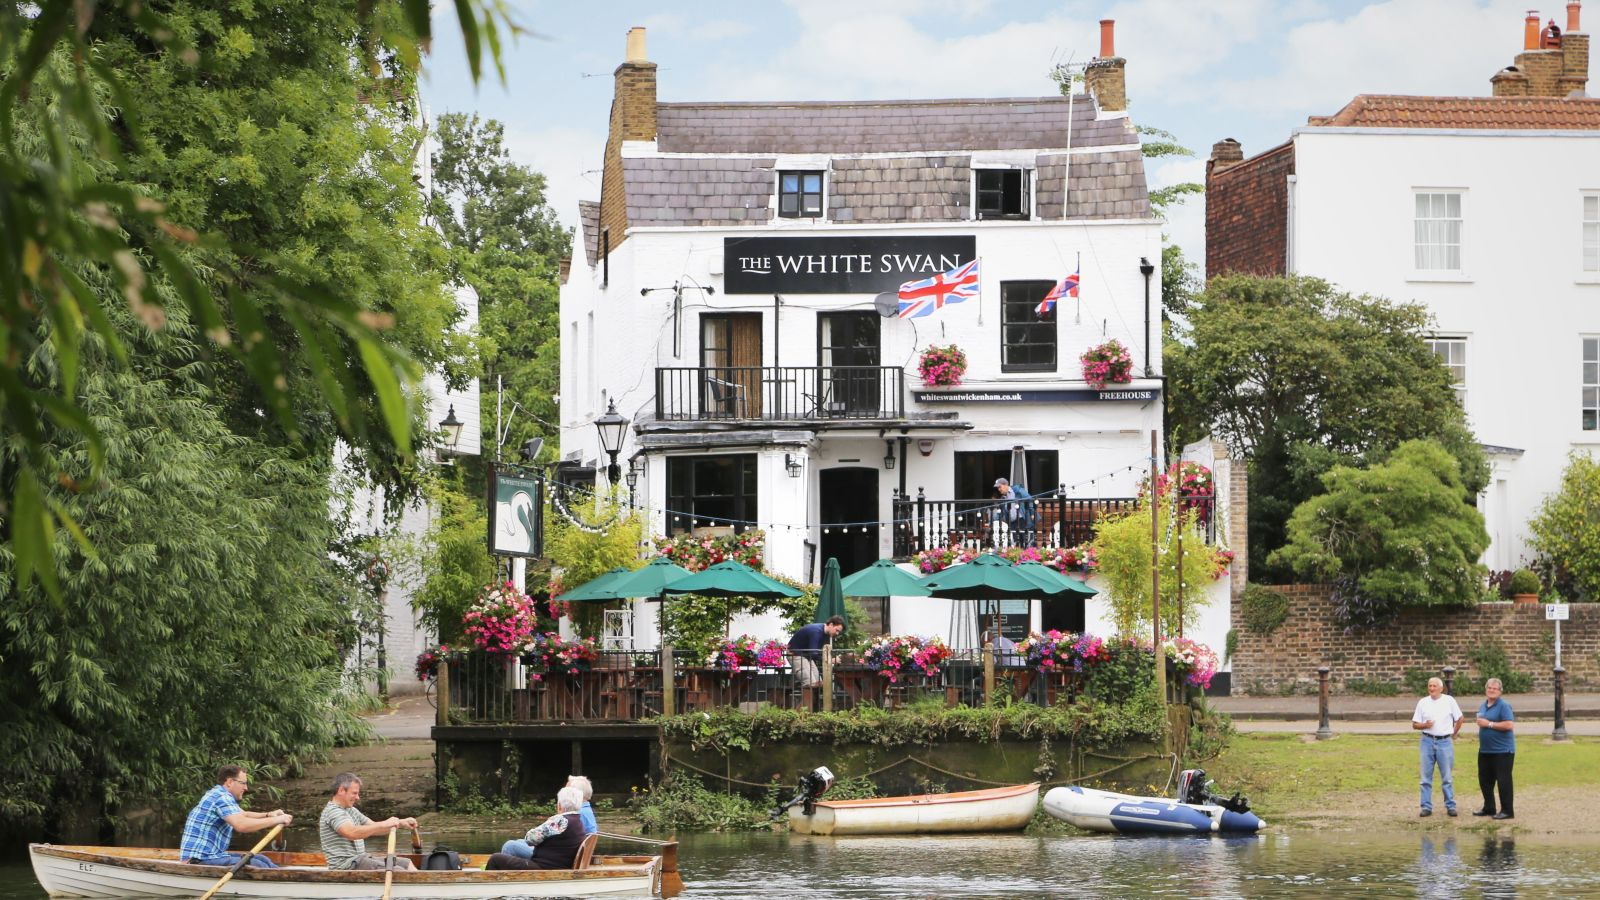 The White Swan, Twickenham